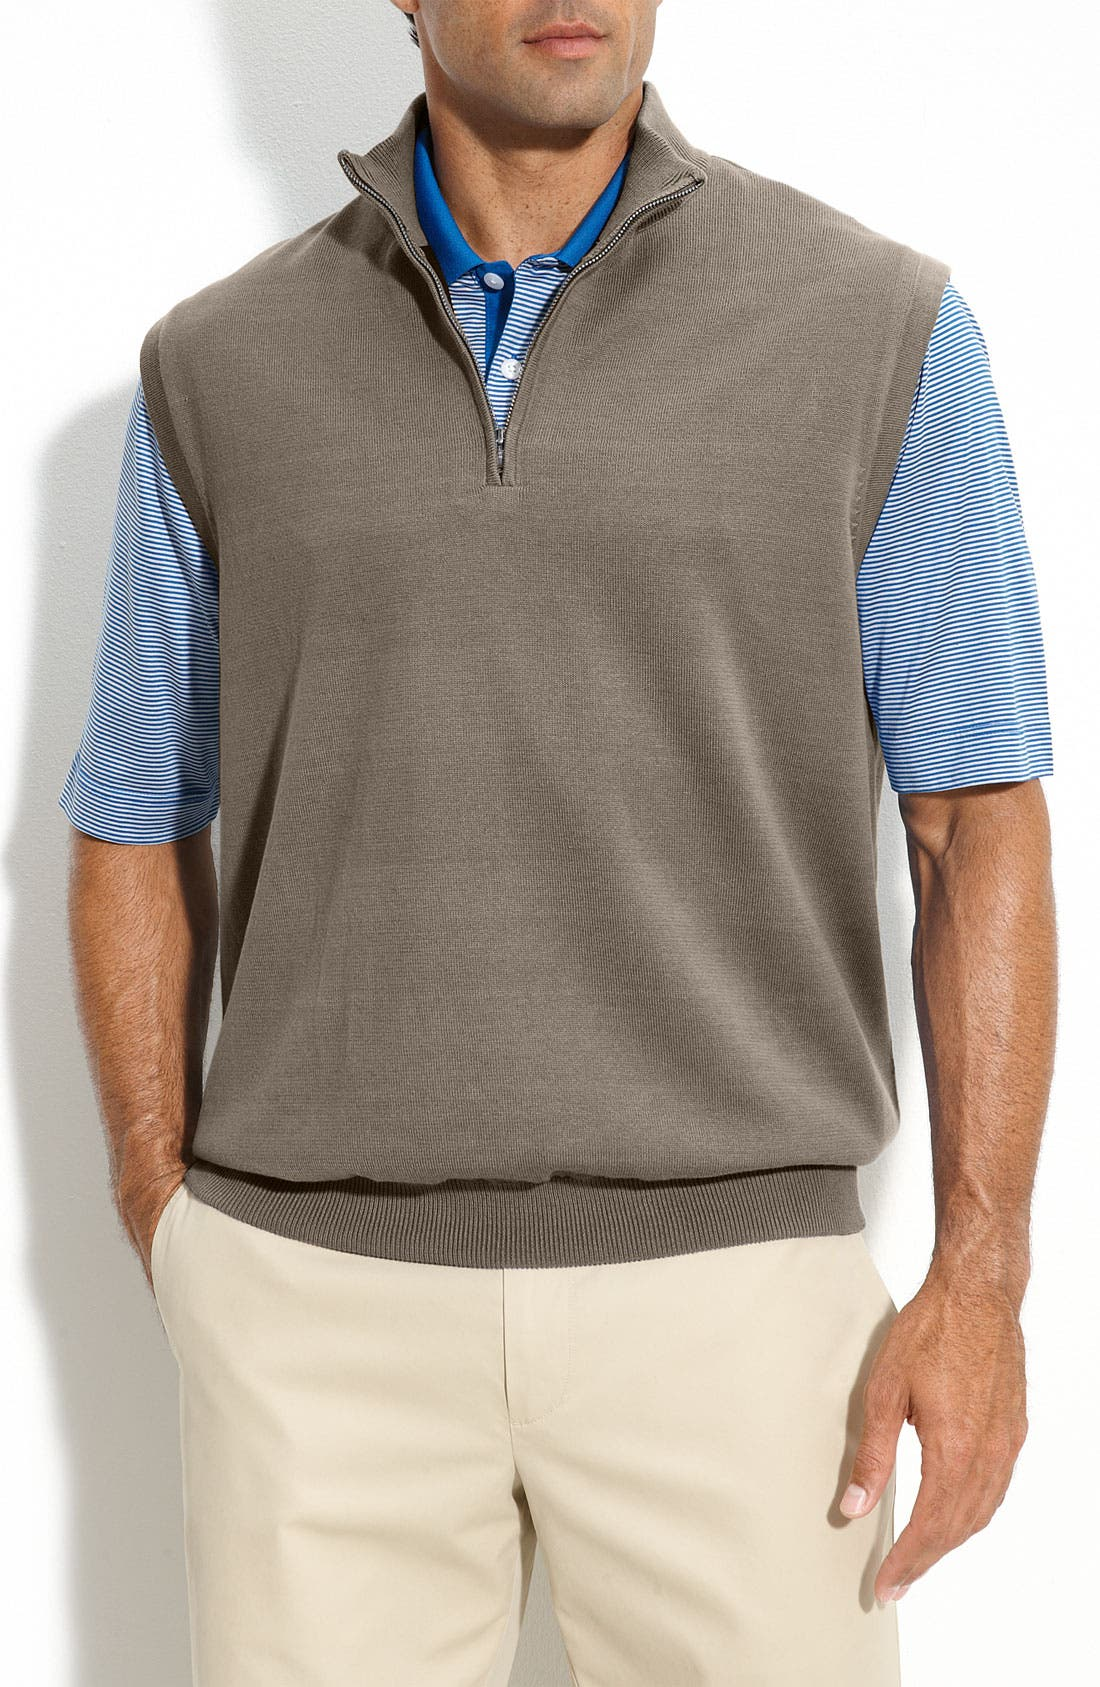 Alternate Image 1 Selected - Cutter & Buck 'Sandpoint' Half Zip Golf Vest